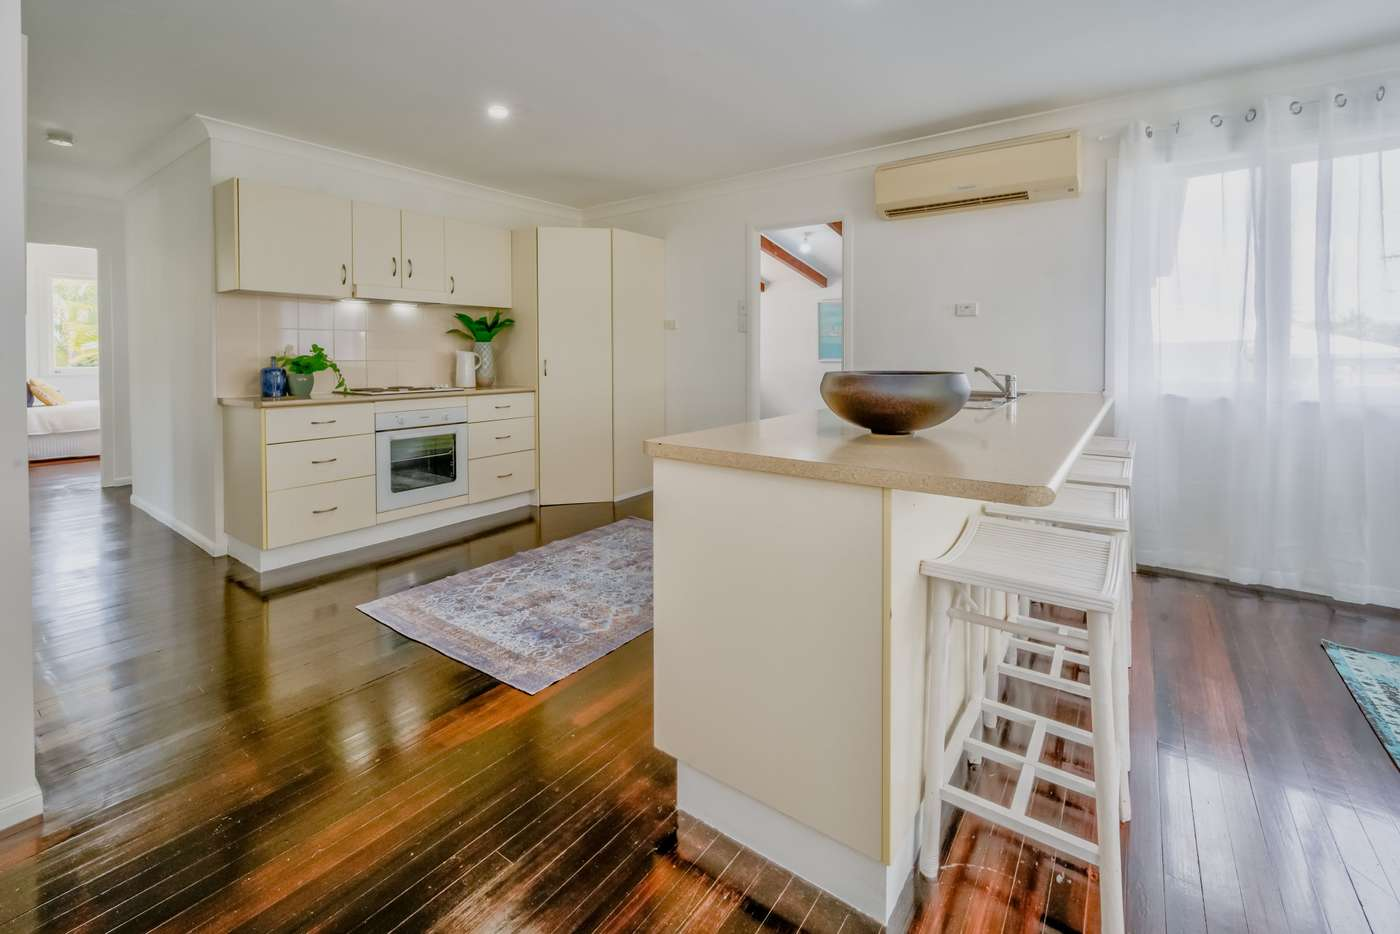 Sixth view of Homely house listing, 151 Palmerston Street, Currajong QLD 4812